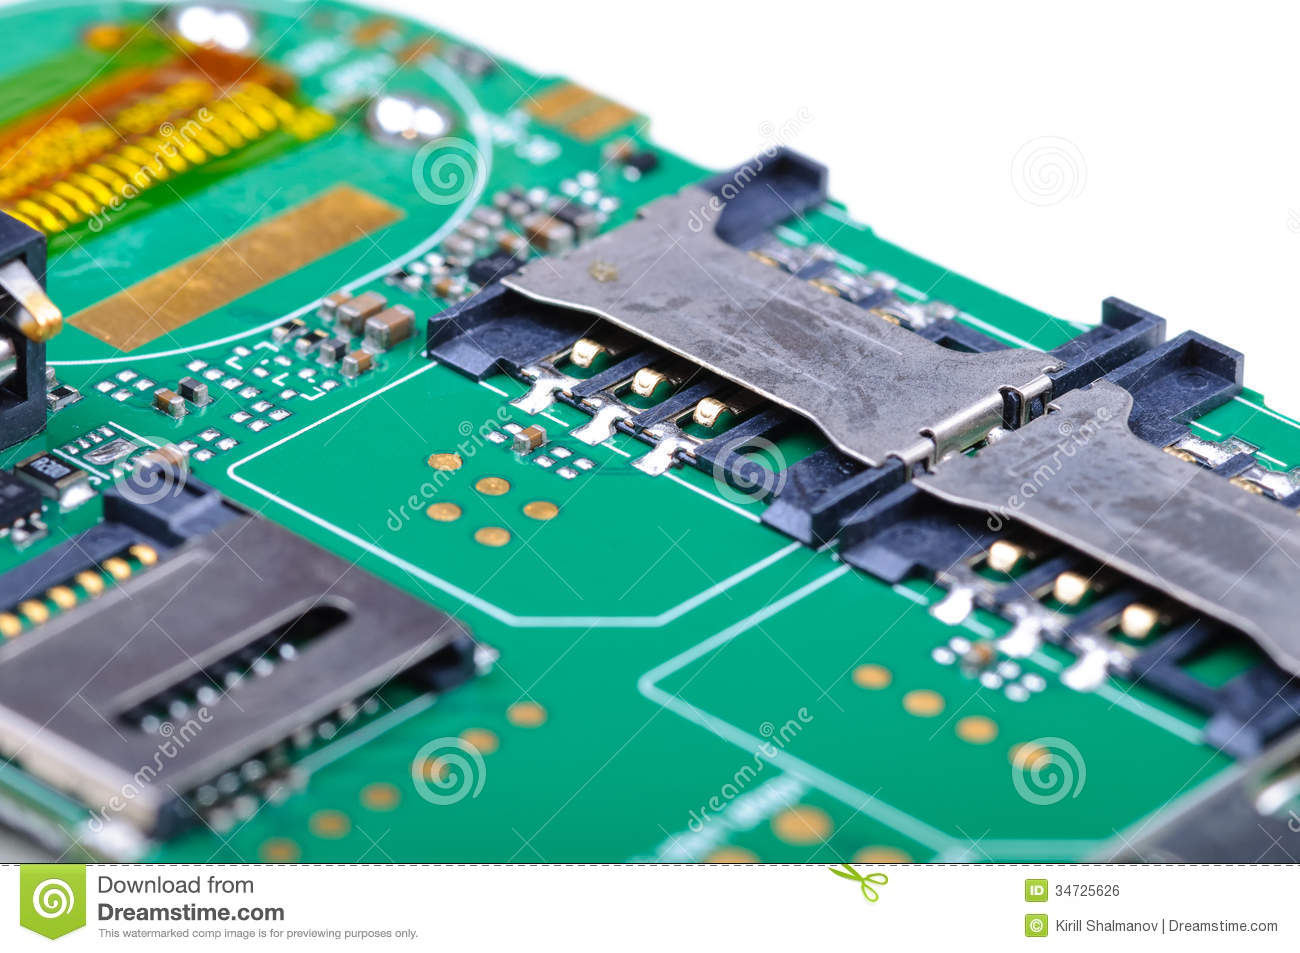 Mobile phone main board stock photo. Image of mobile - 34725626